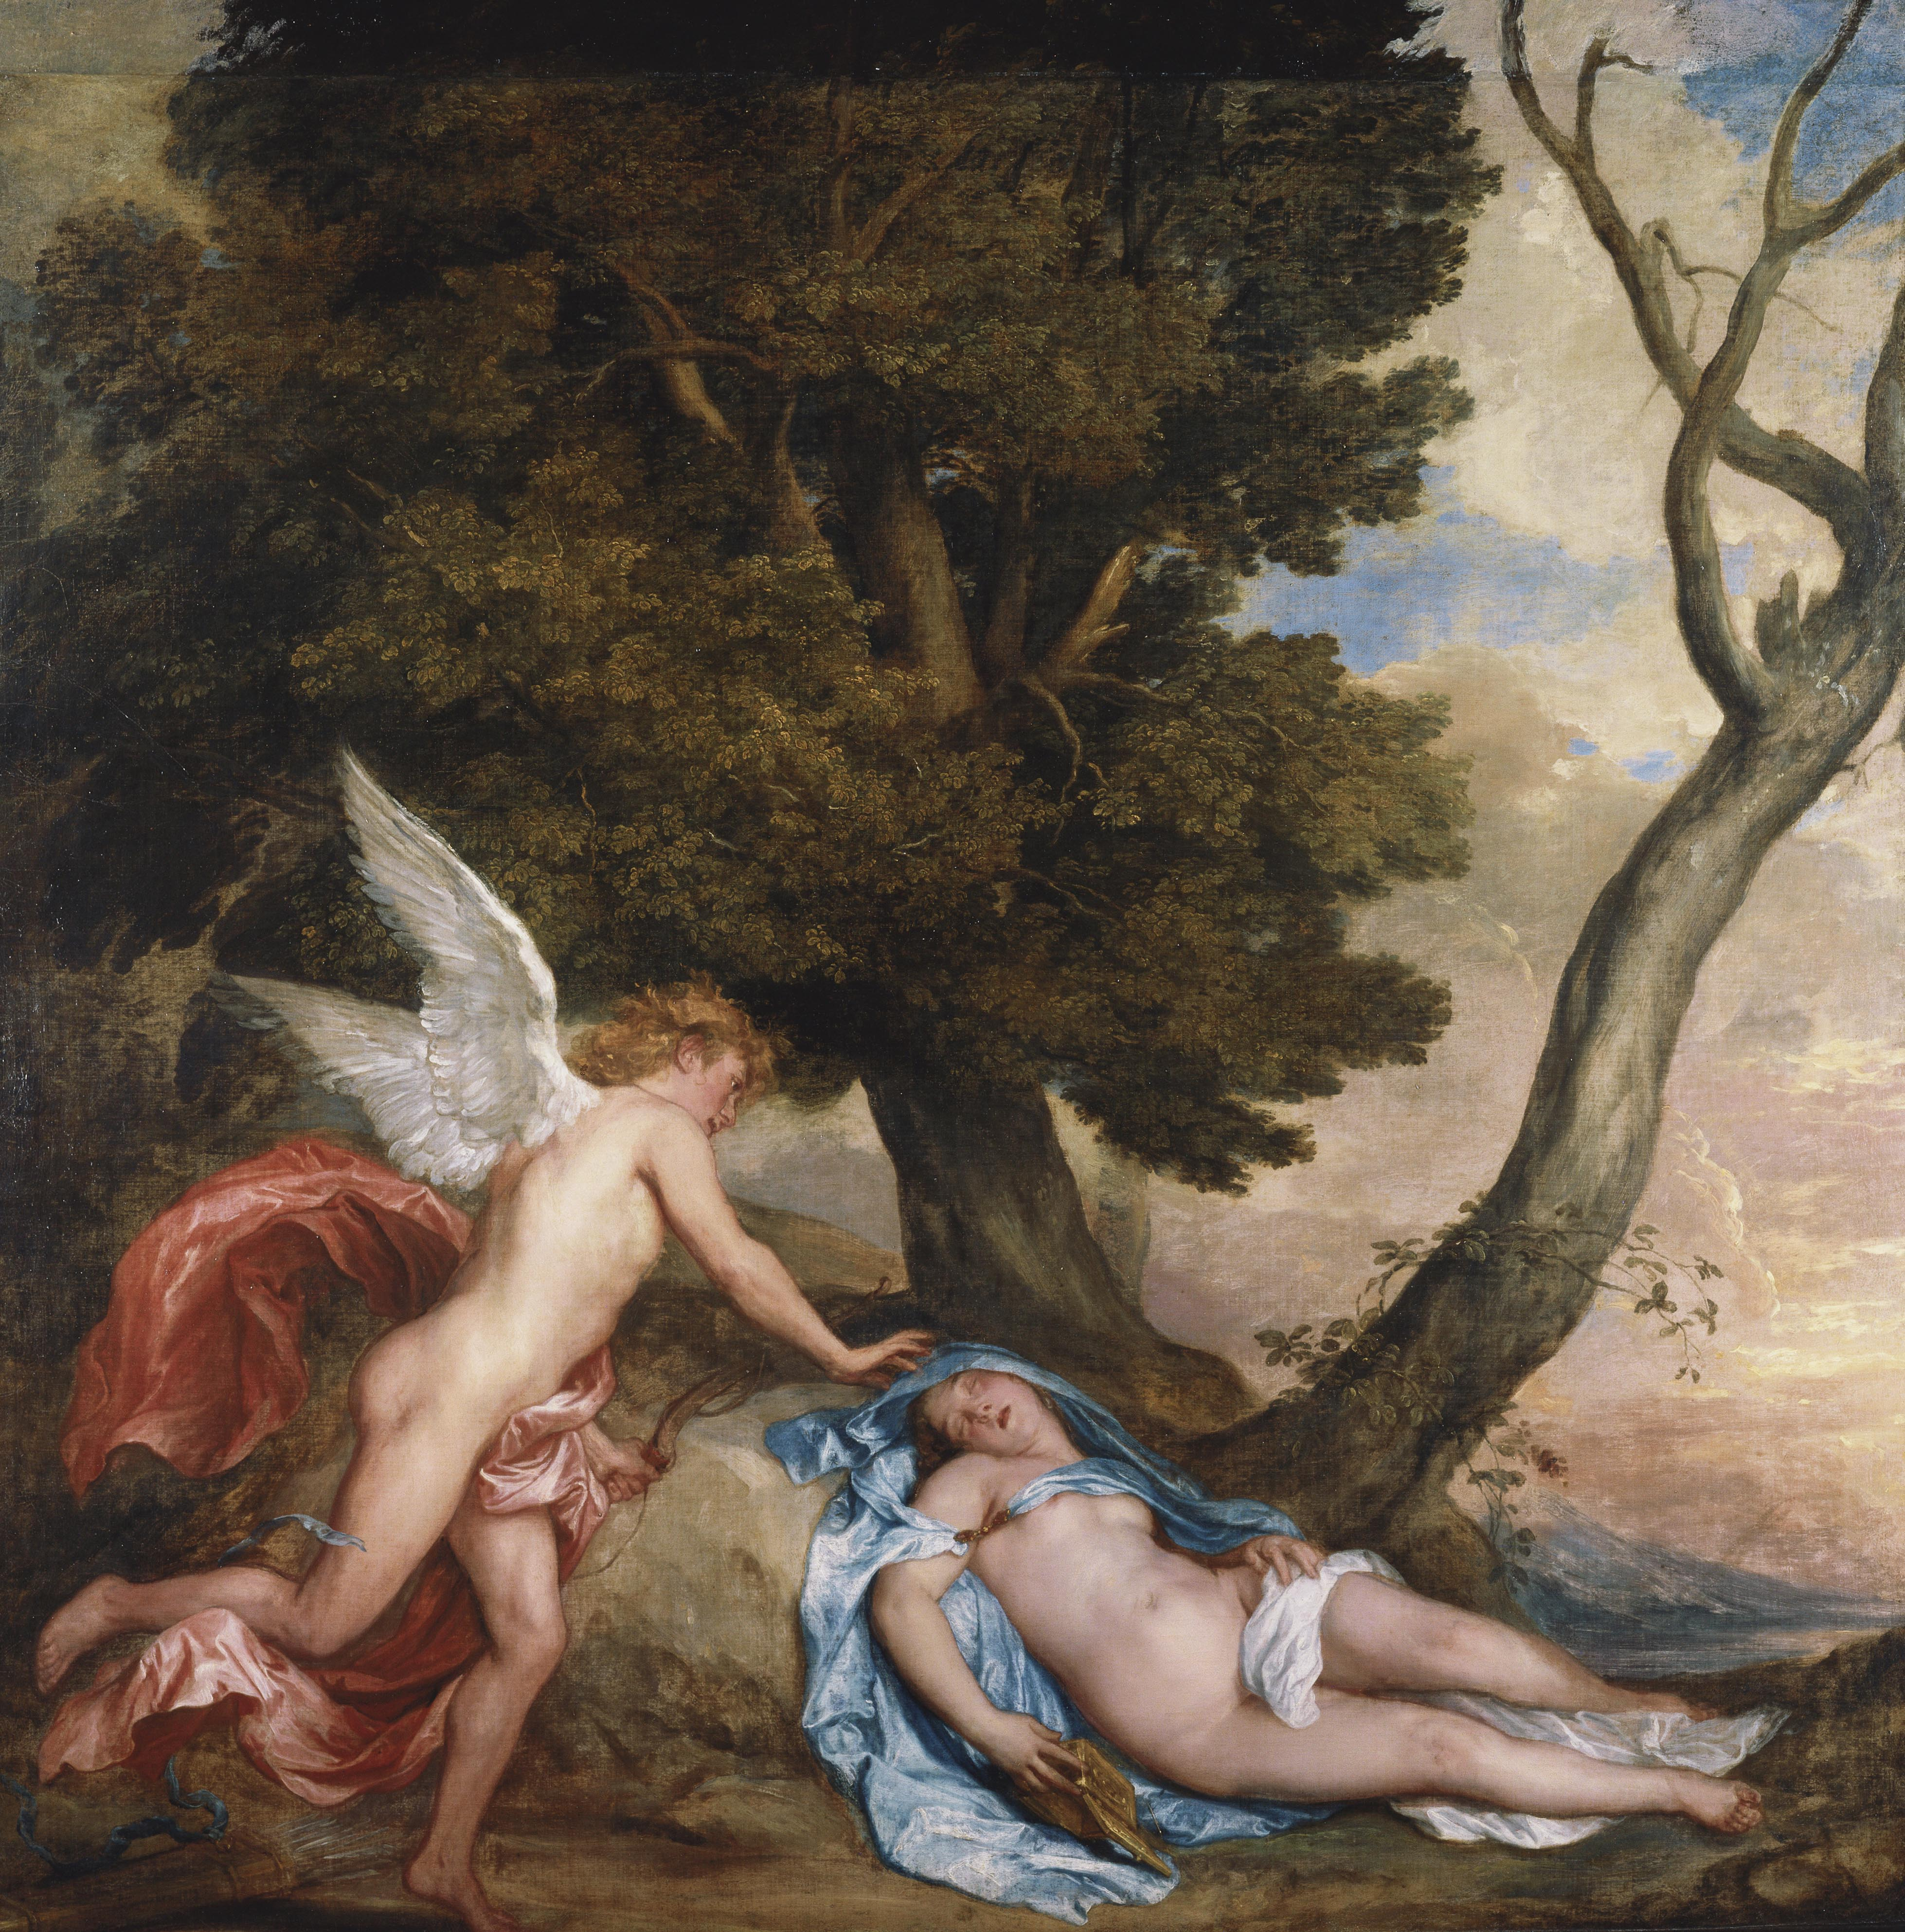 Anthony van Dyck, Cupid and Psyche,